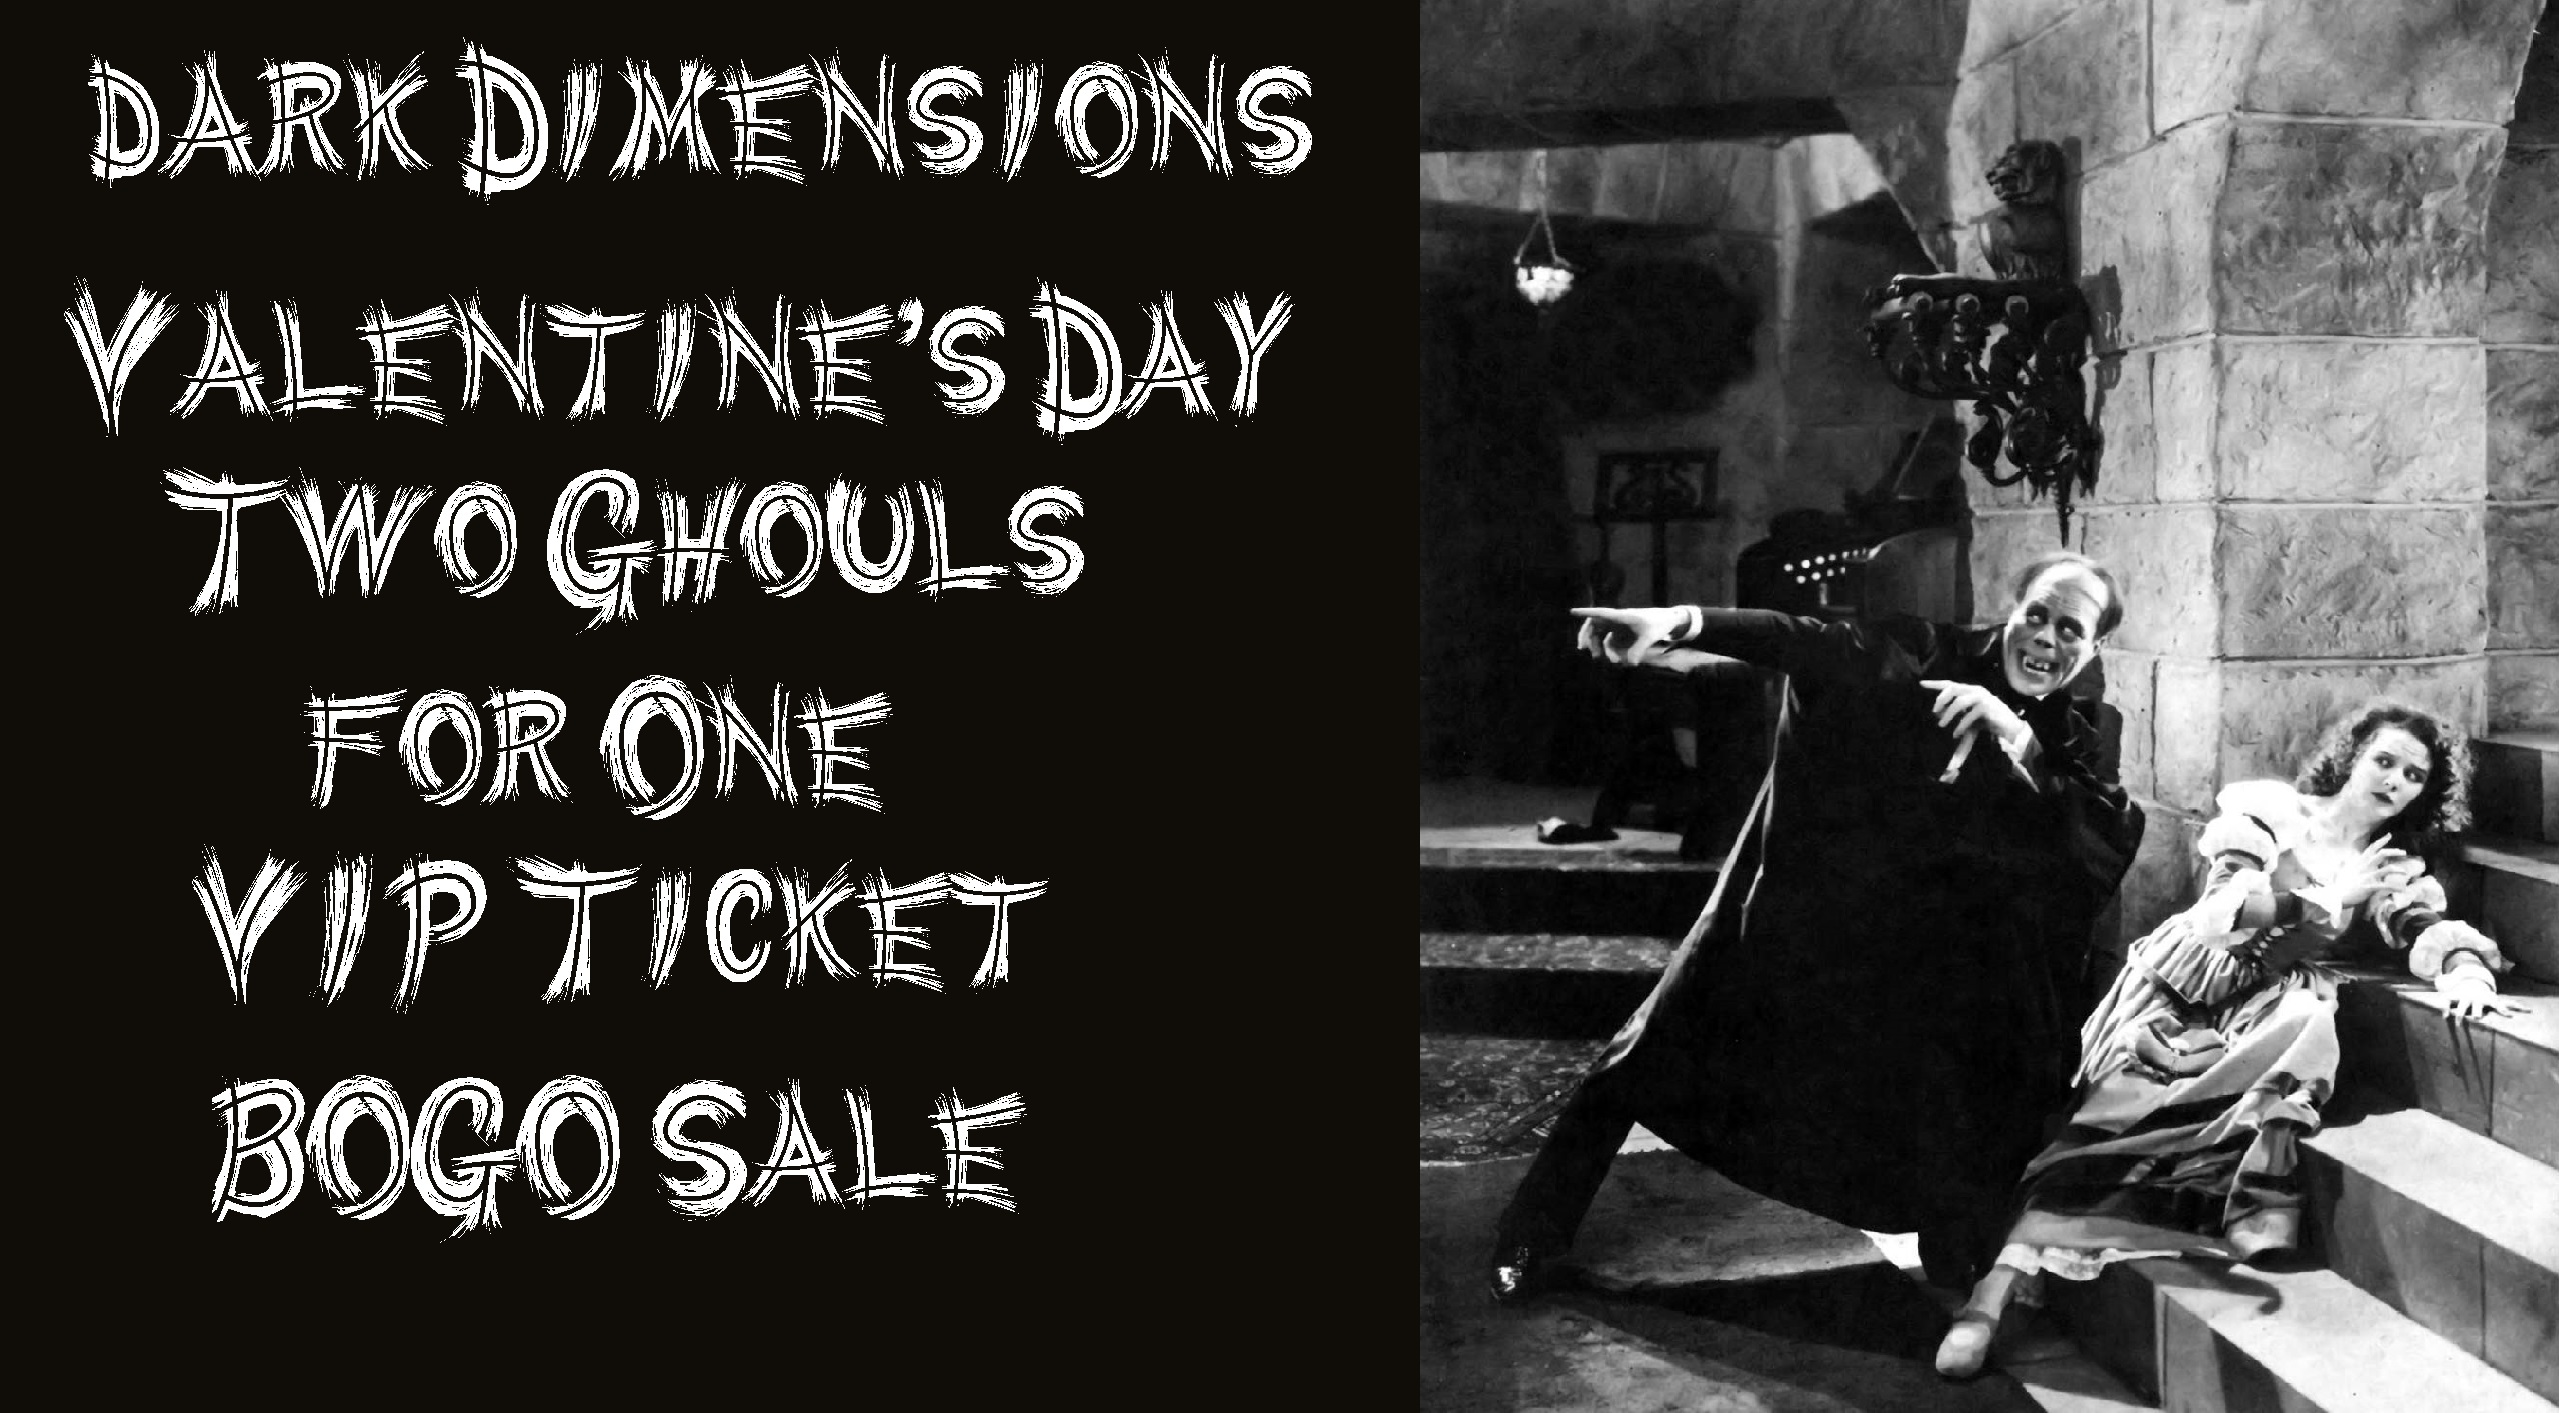 Dark Dimensions Two Ghouls for One VIP Ticket BOGO